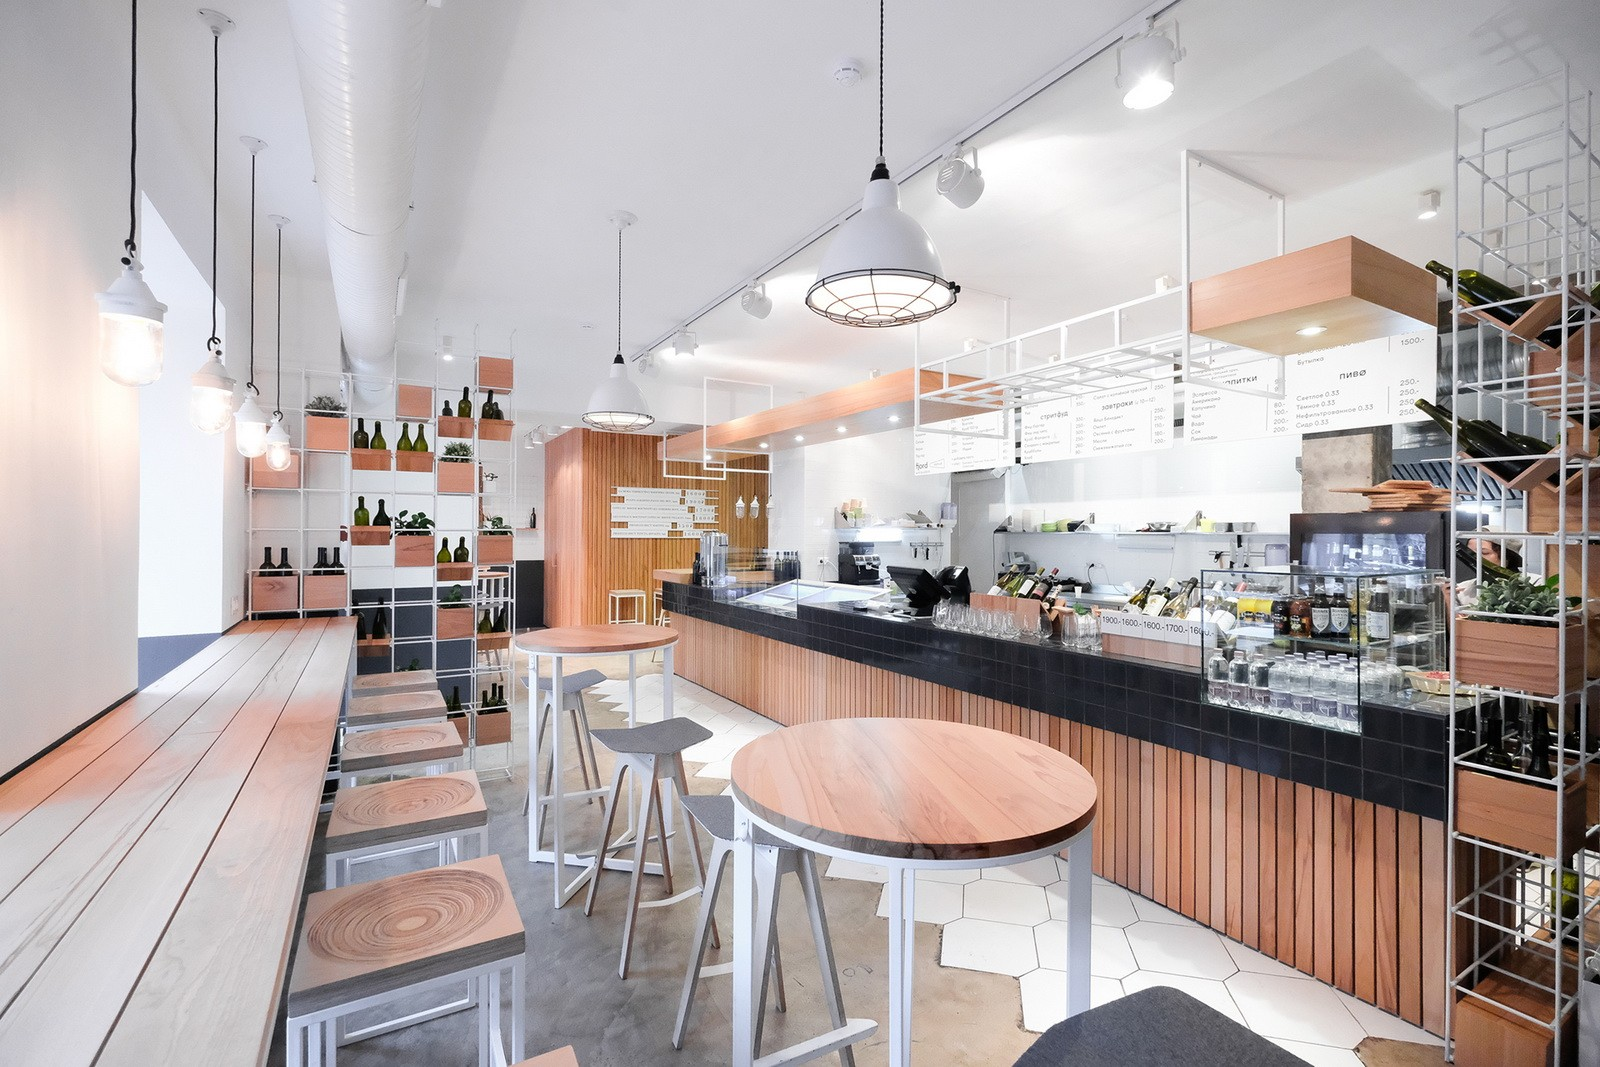 OUYEE modern small cafe design ideas bulk production for furniture-5